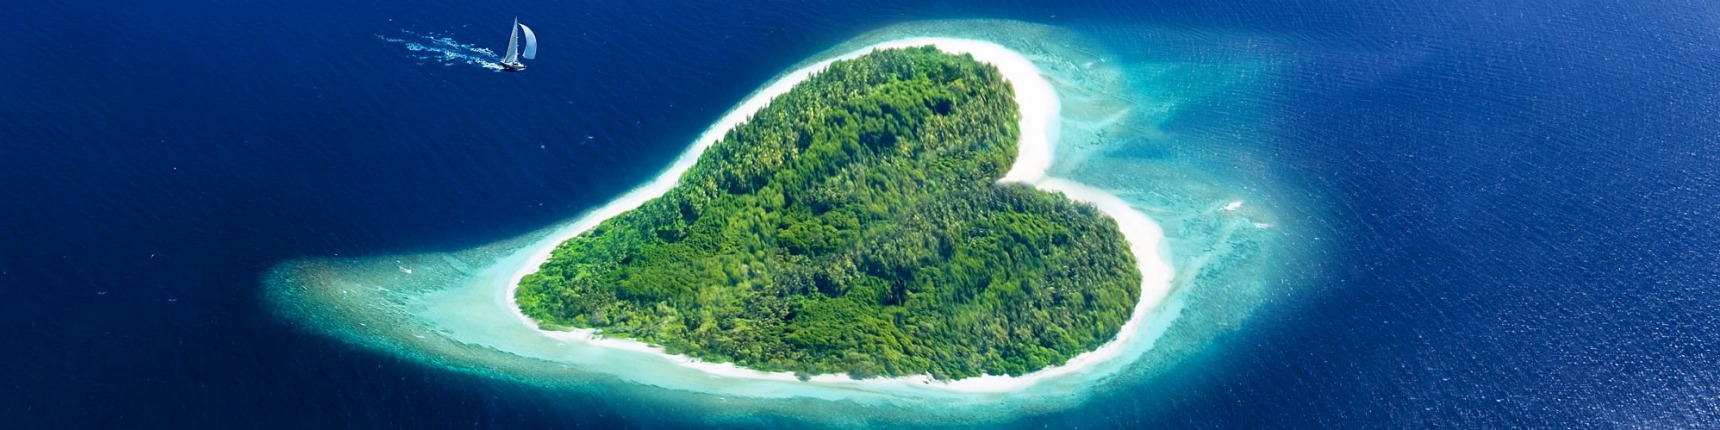 Maldives (300 square kilometres. Population: 393,000). The Maldives is a place you come to relax, perhaps do a bit of ...